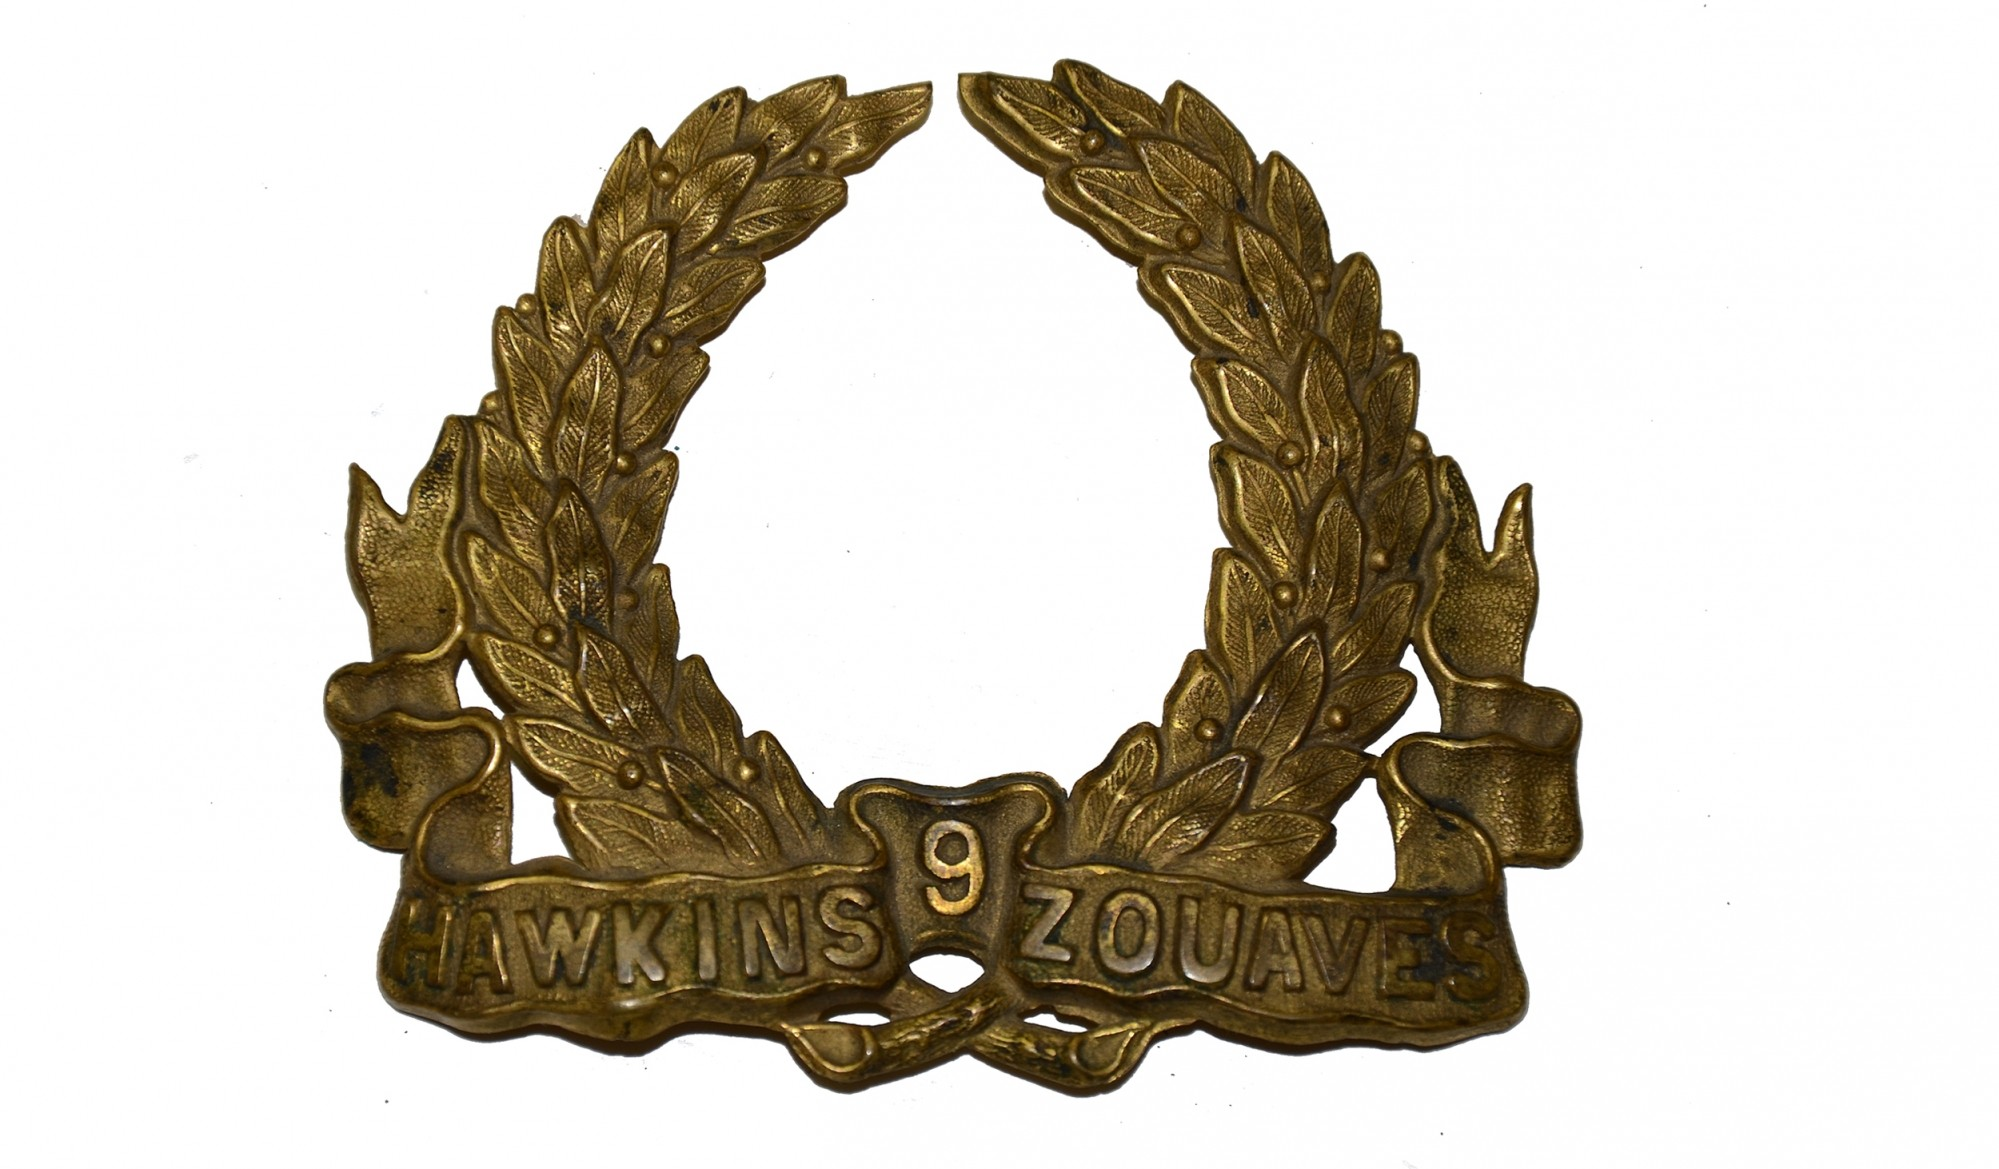 HAWKINS ZOUAVES, 9th NEW YORK INFANTRY HAT INSIGNIA